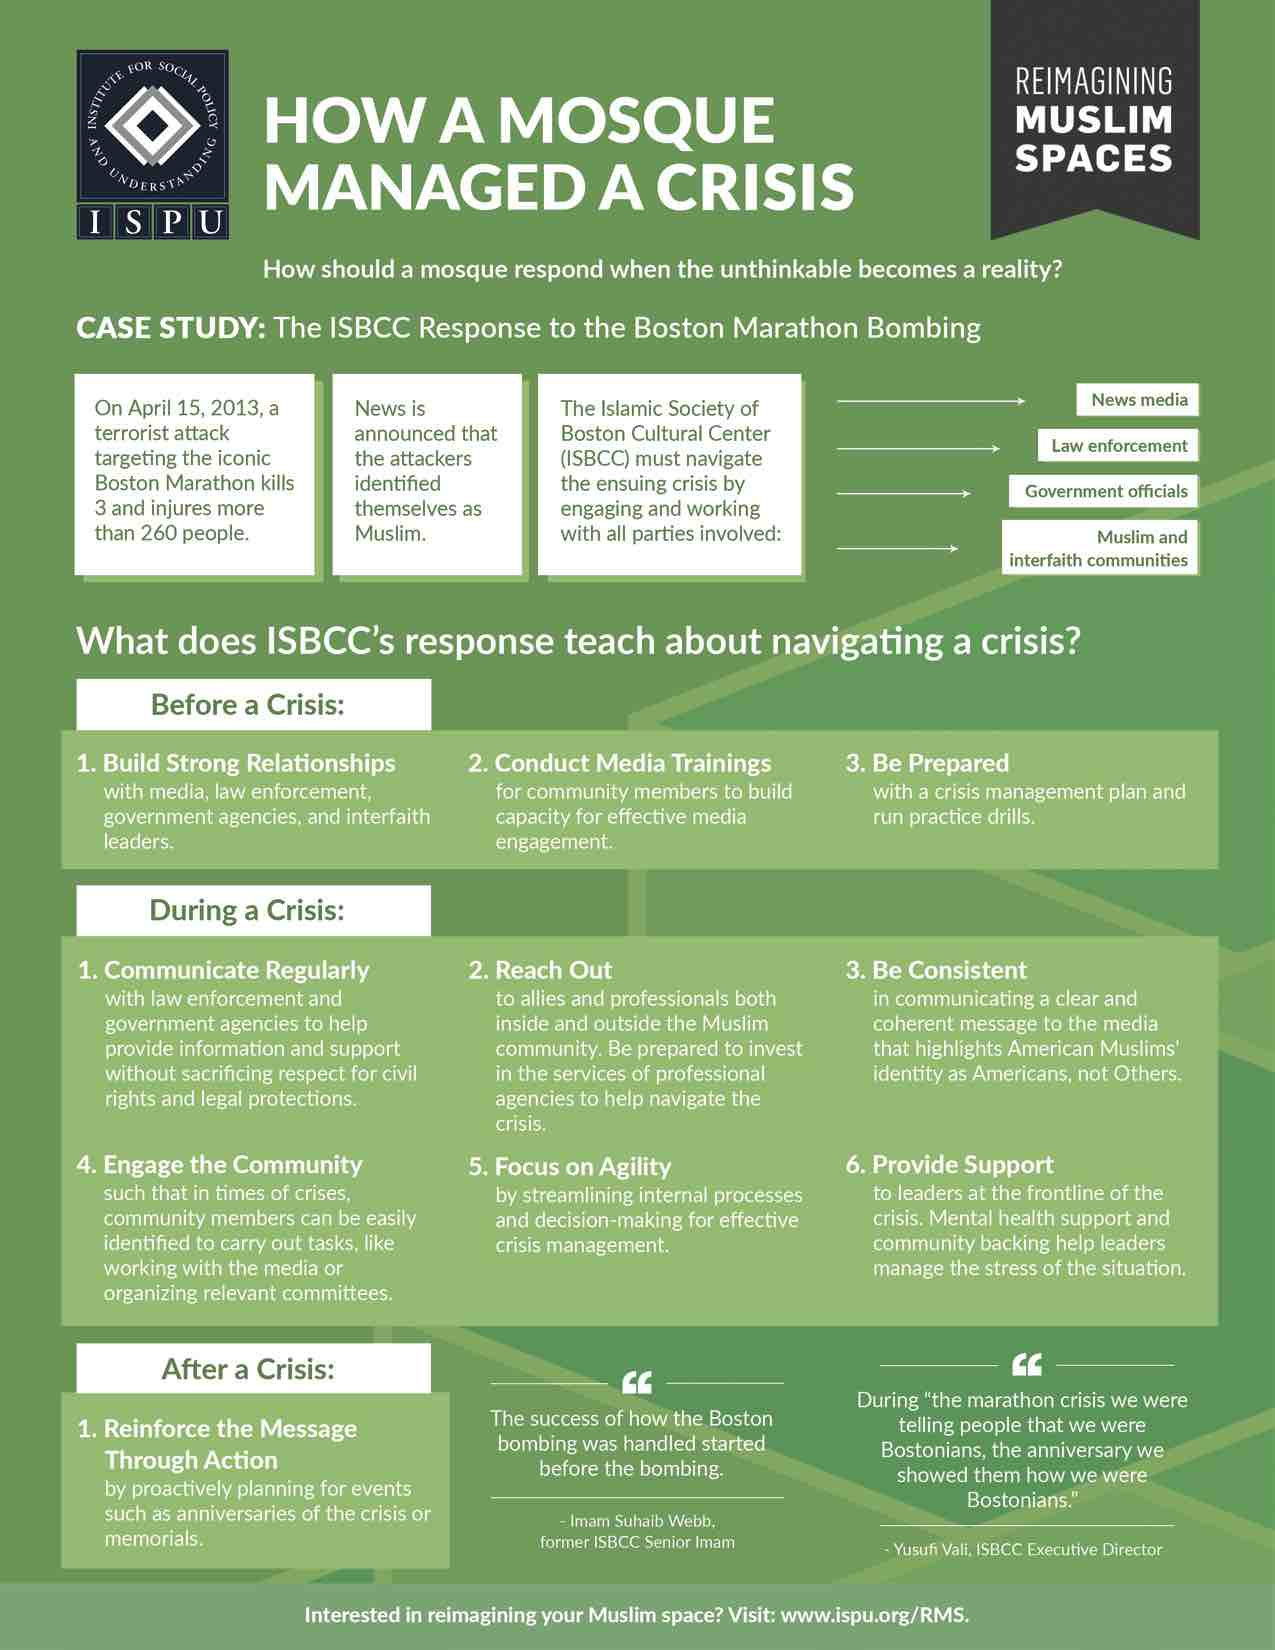 How a Mosque Managed a Crisis Infographic